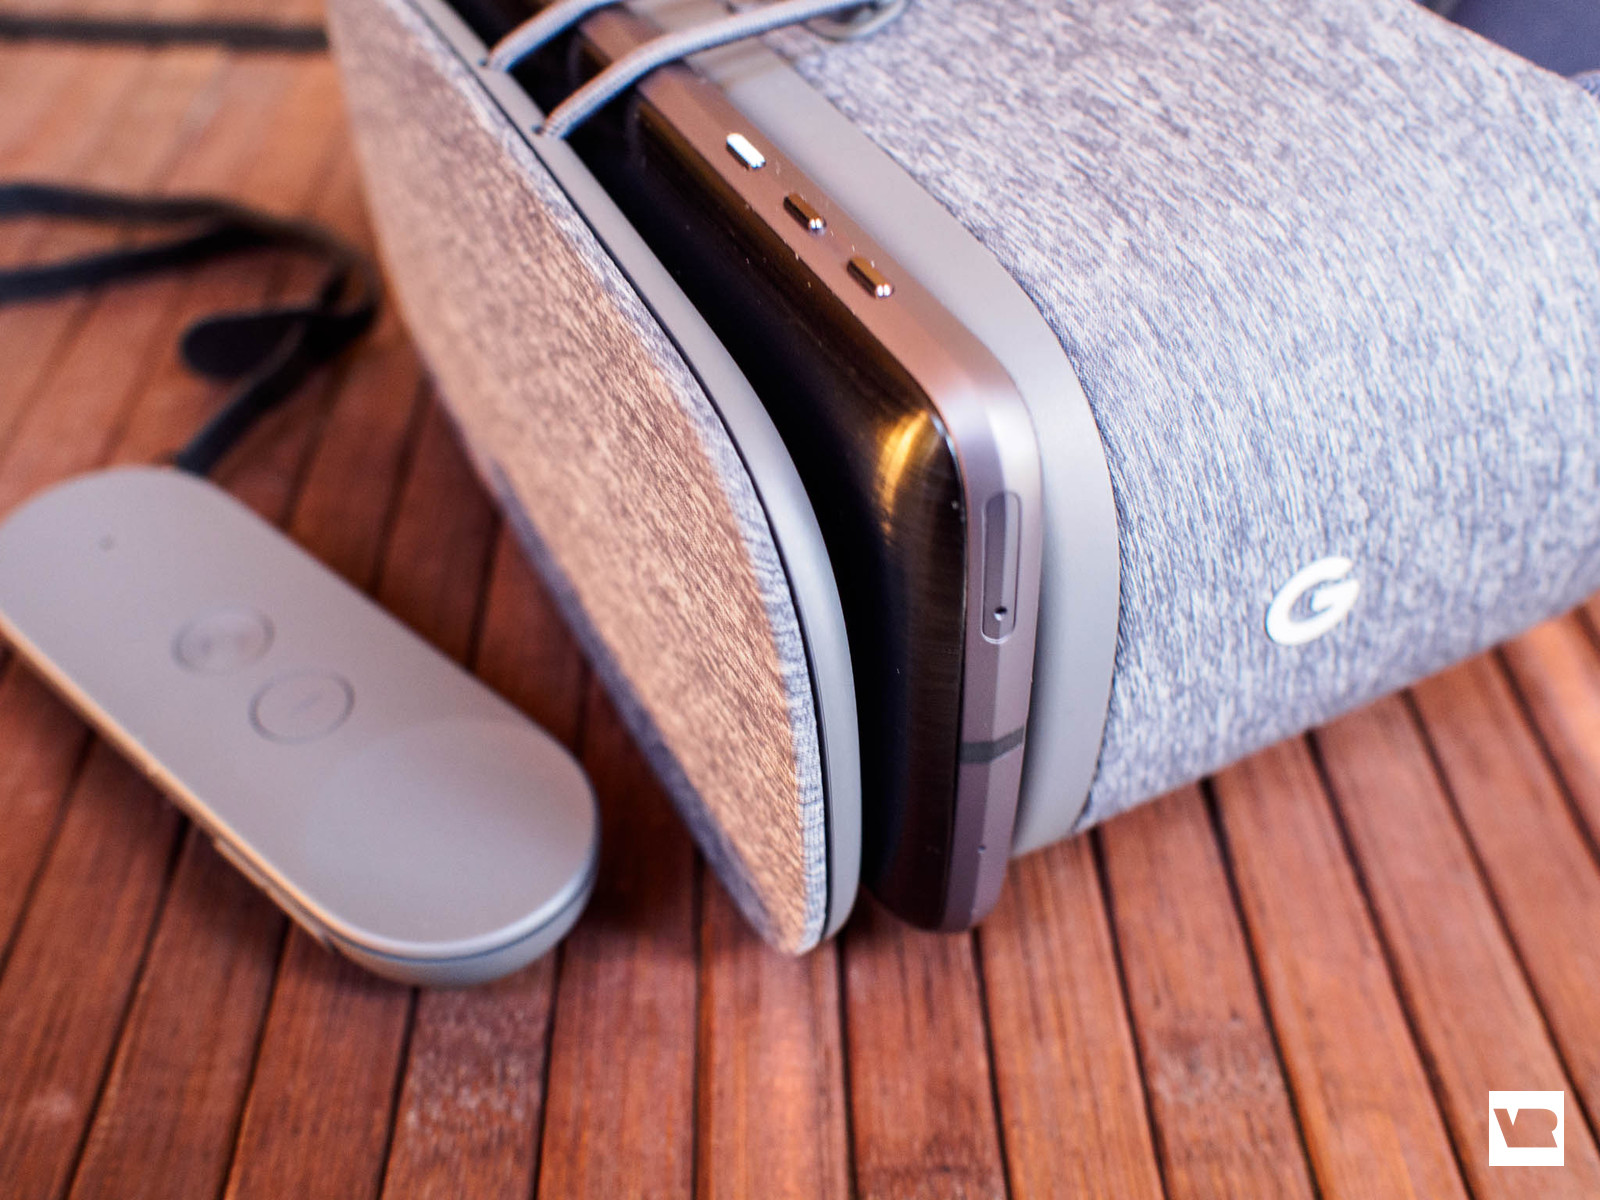 d56cfafc15a If you ve used a Samsung Gear VR or Google Cardboard headset before